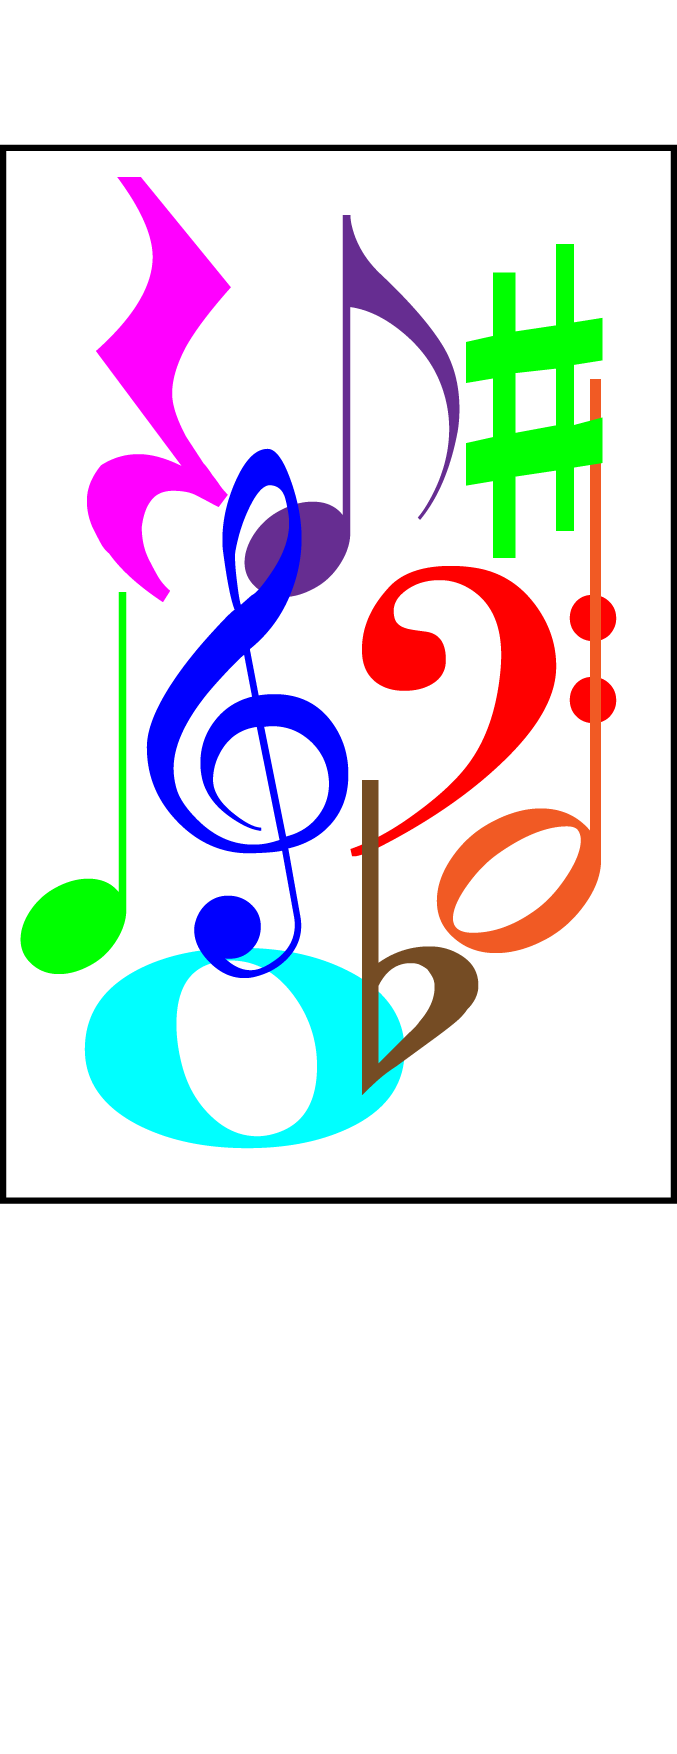 Anybody can play piano resources even though beginning piano students are concentrating on making their fingers work music symbols can be learned as preparation for reading notation biocorpaavc Image collections